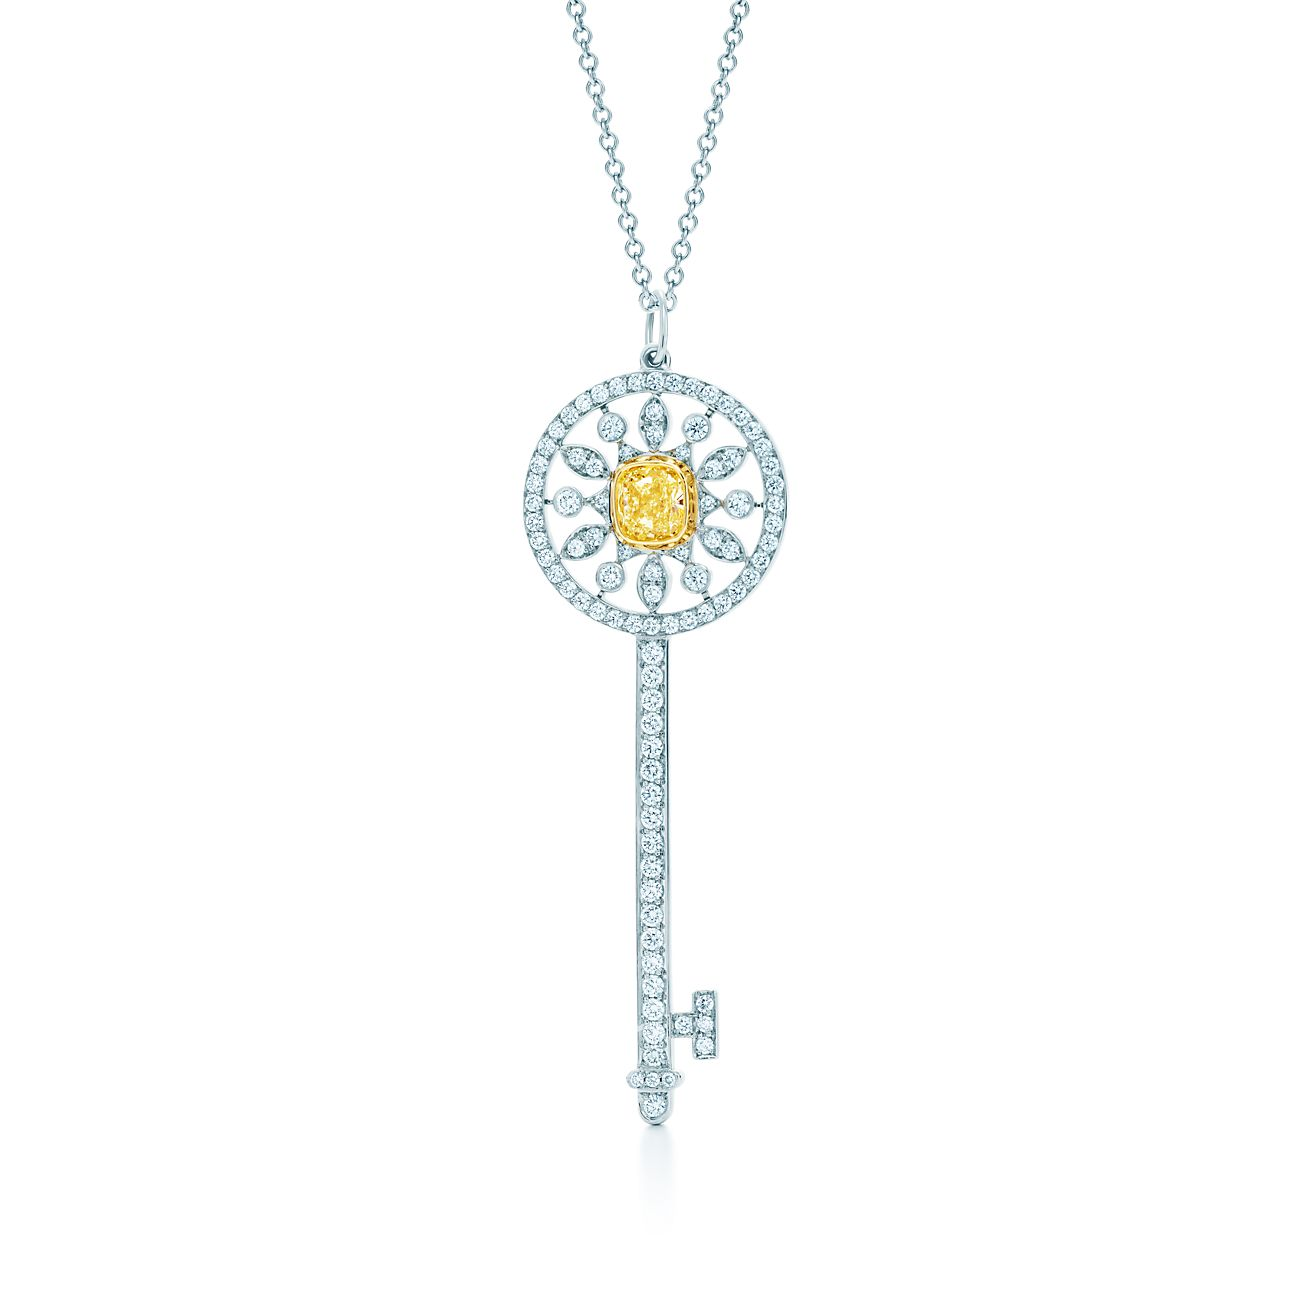 Tiffany keys star key pendant of yellow and white diamonds in tiffany keysstar key pendant aloadofball